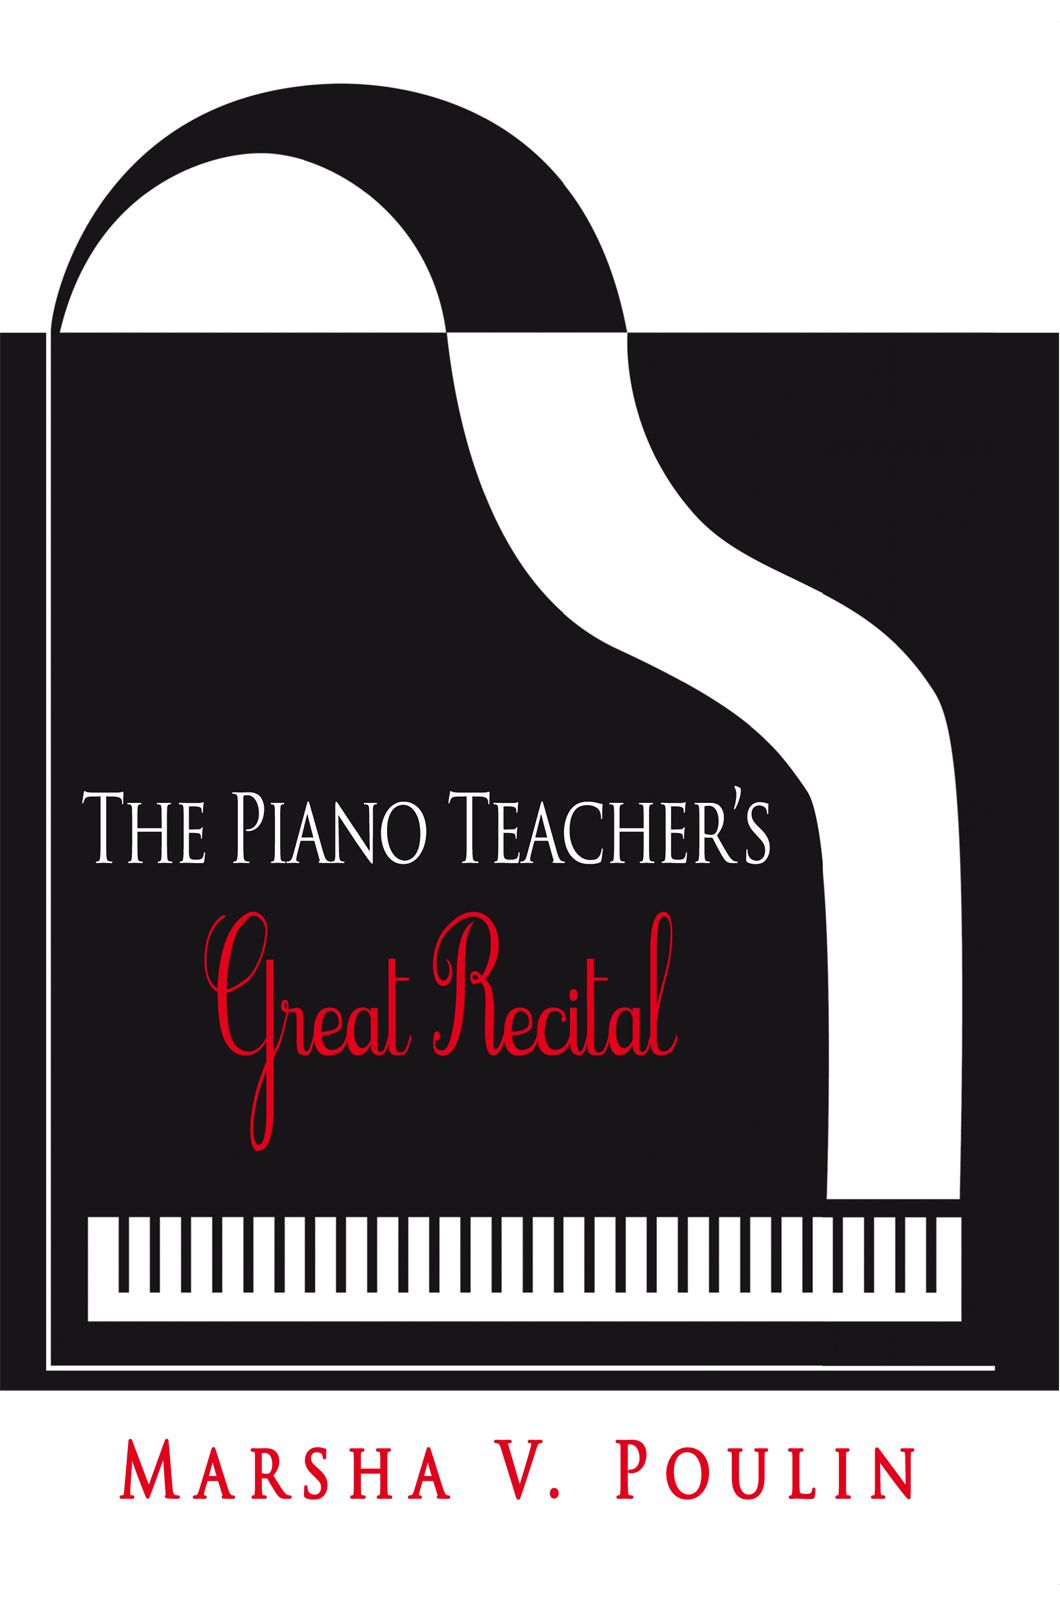 The Piano Teachers Great Recital